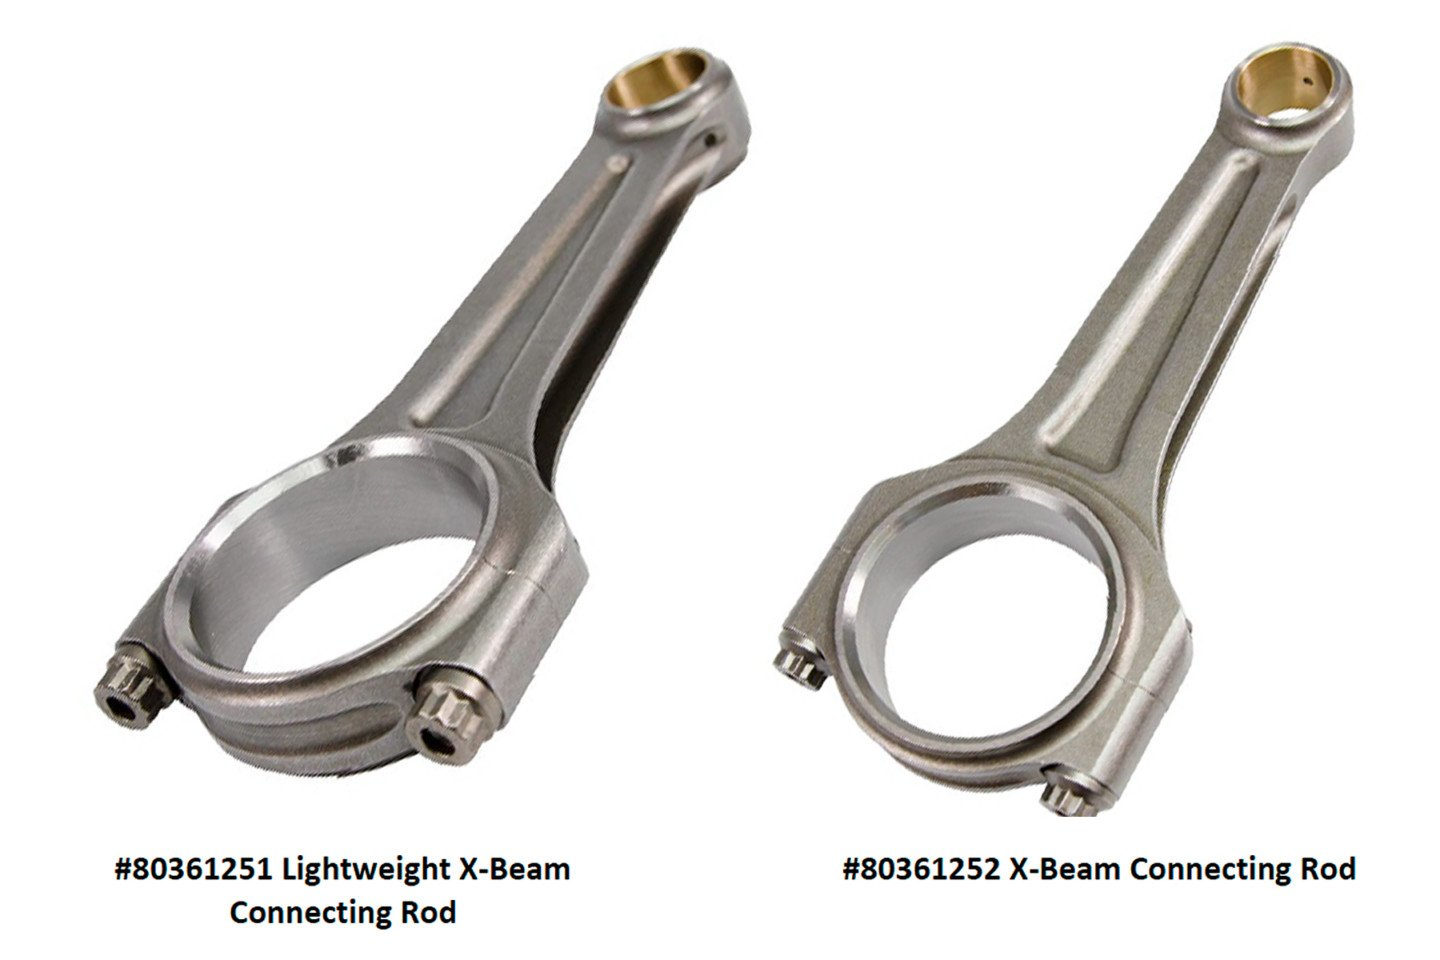 X-beam connecting rods